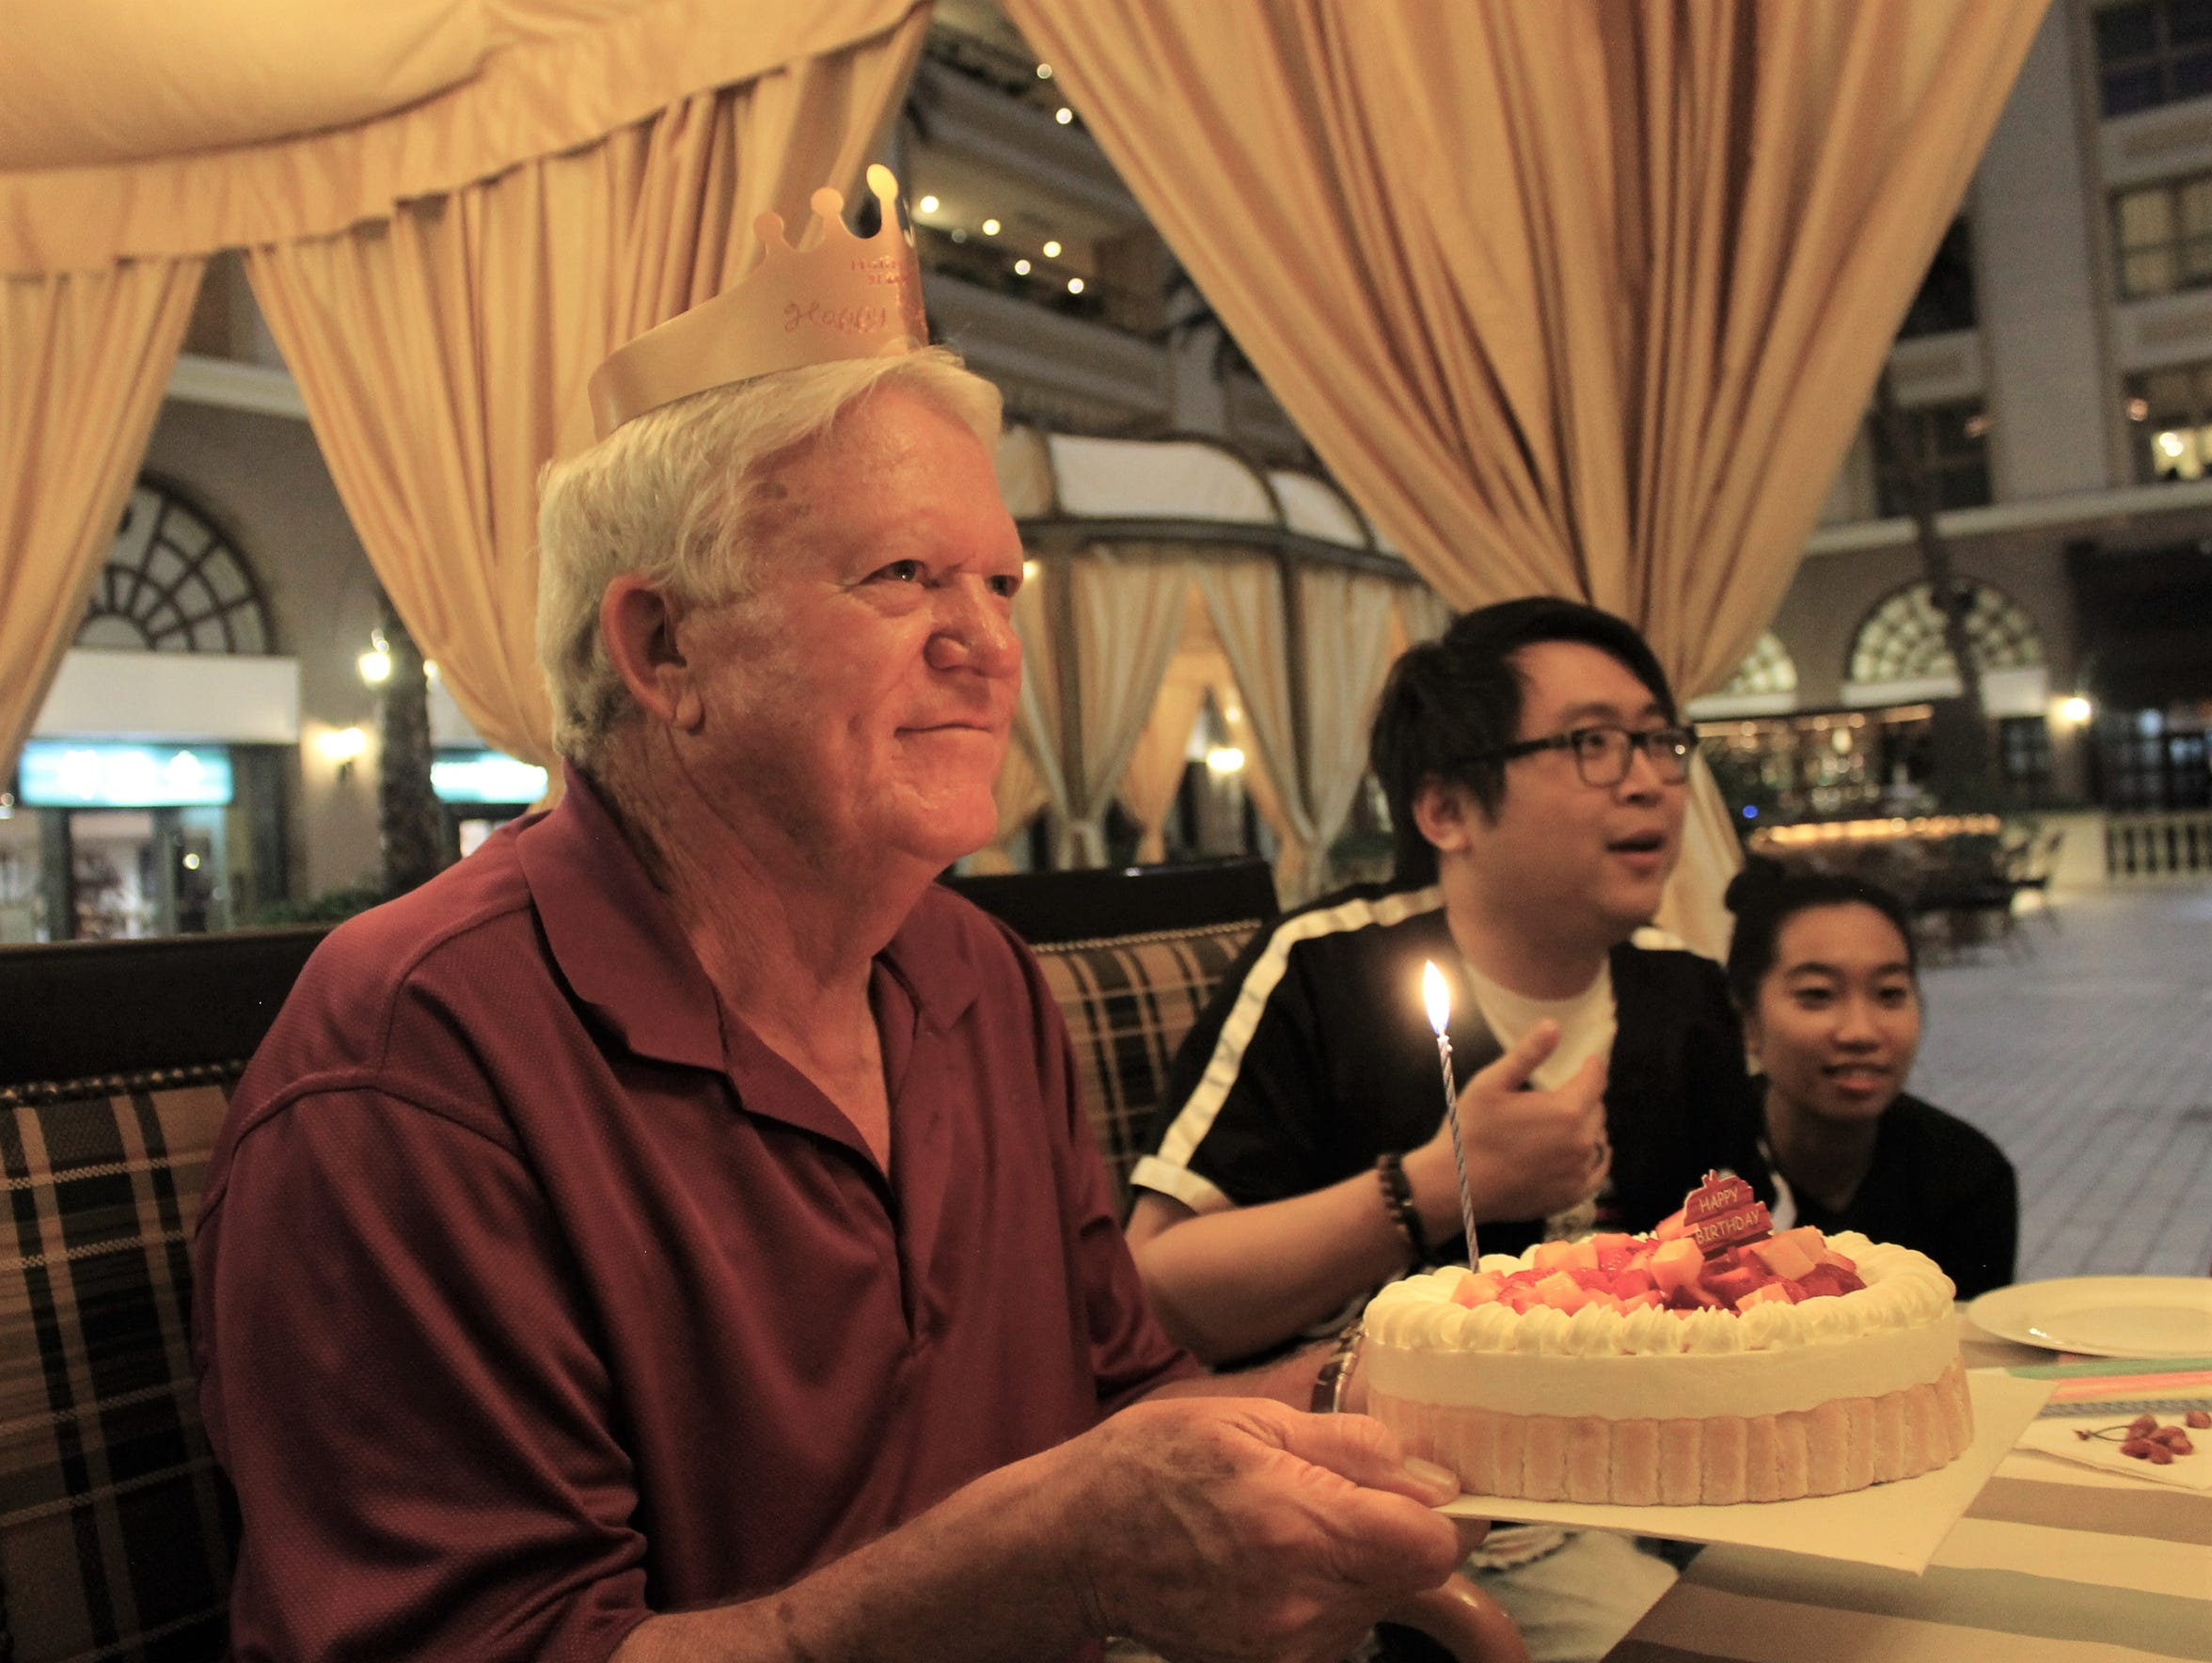 It was a sweet gesture, if not a sweet cake - more like pound cake, with fruit inside - that Melvin Martin received on his 71st birthday May 31 while in China.